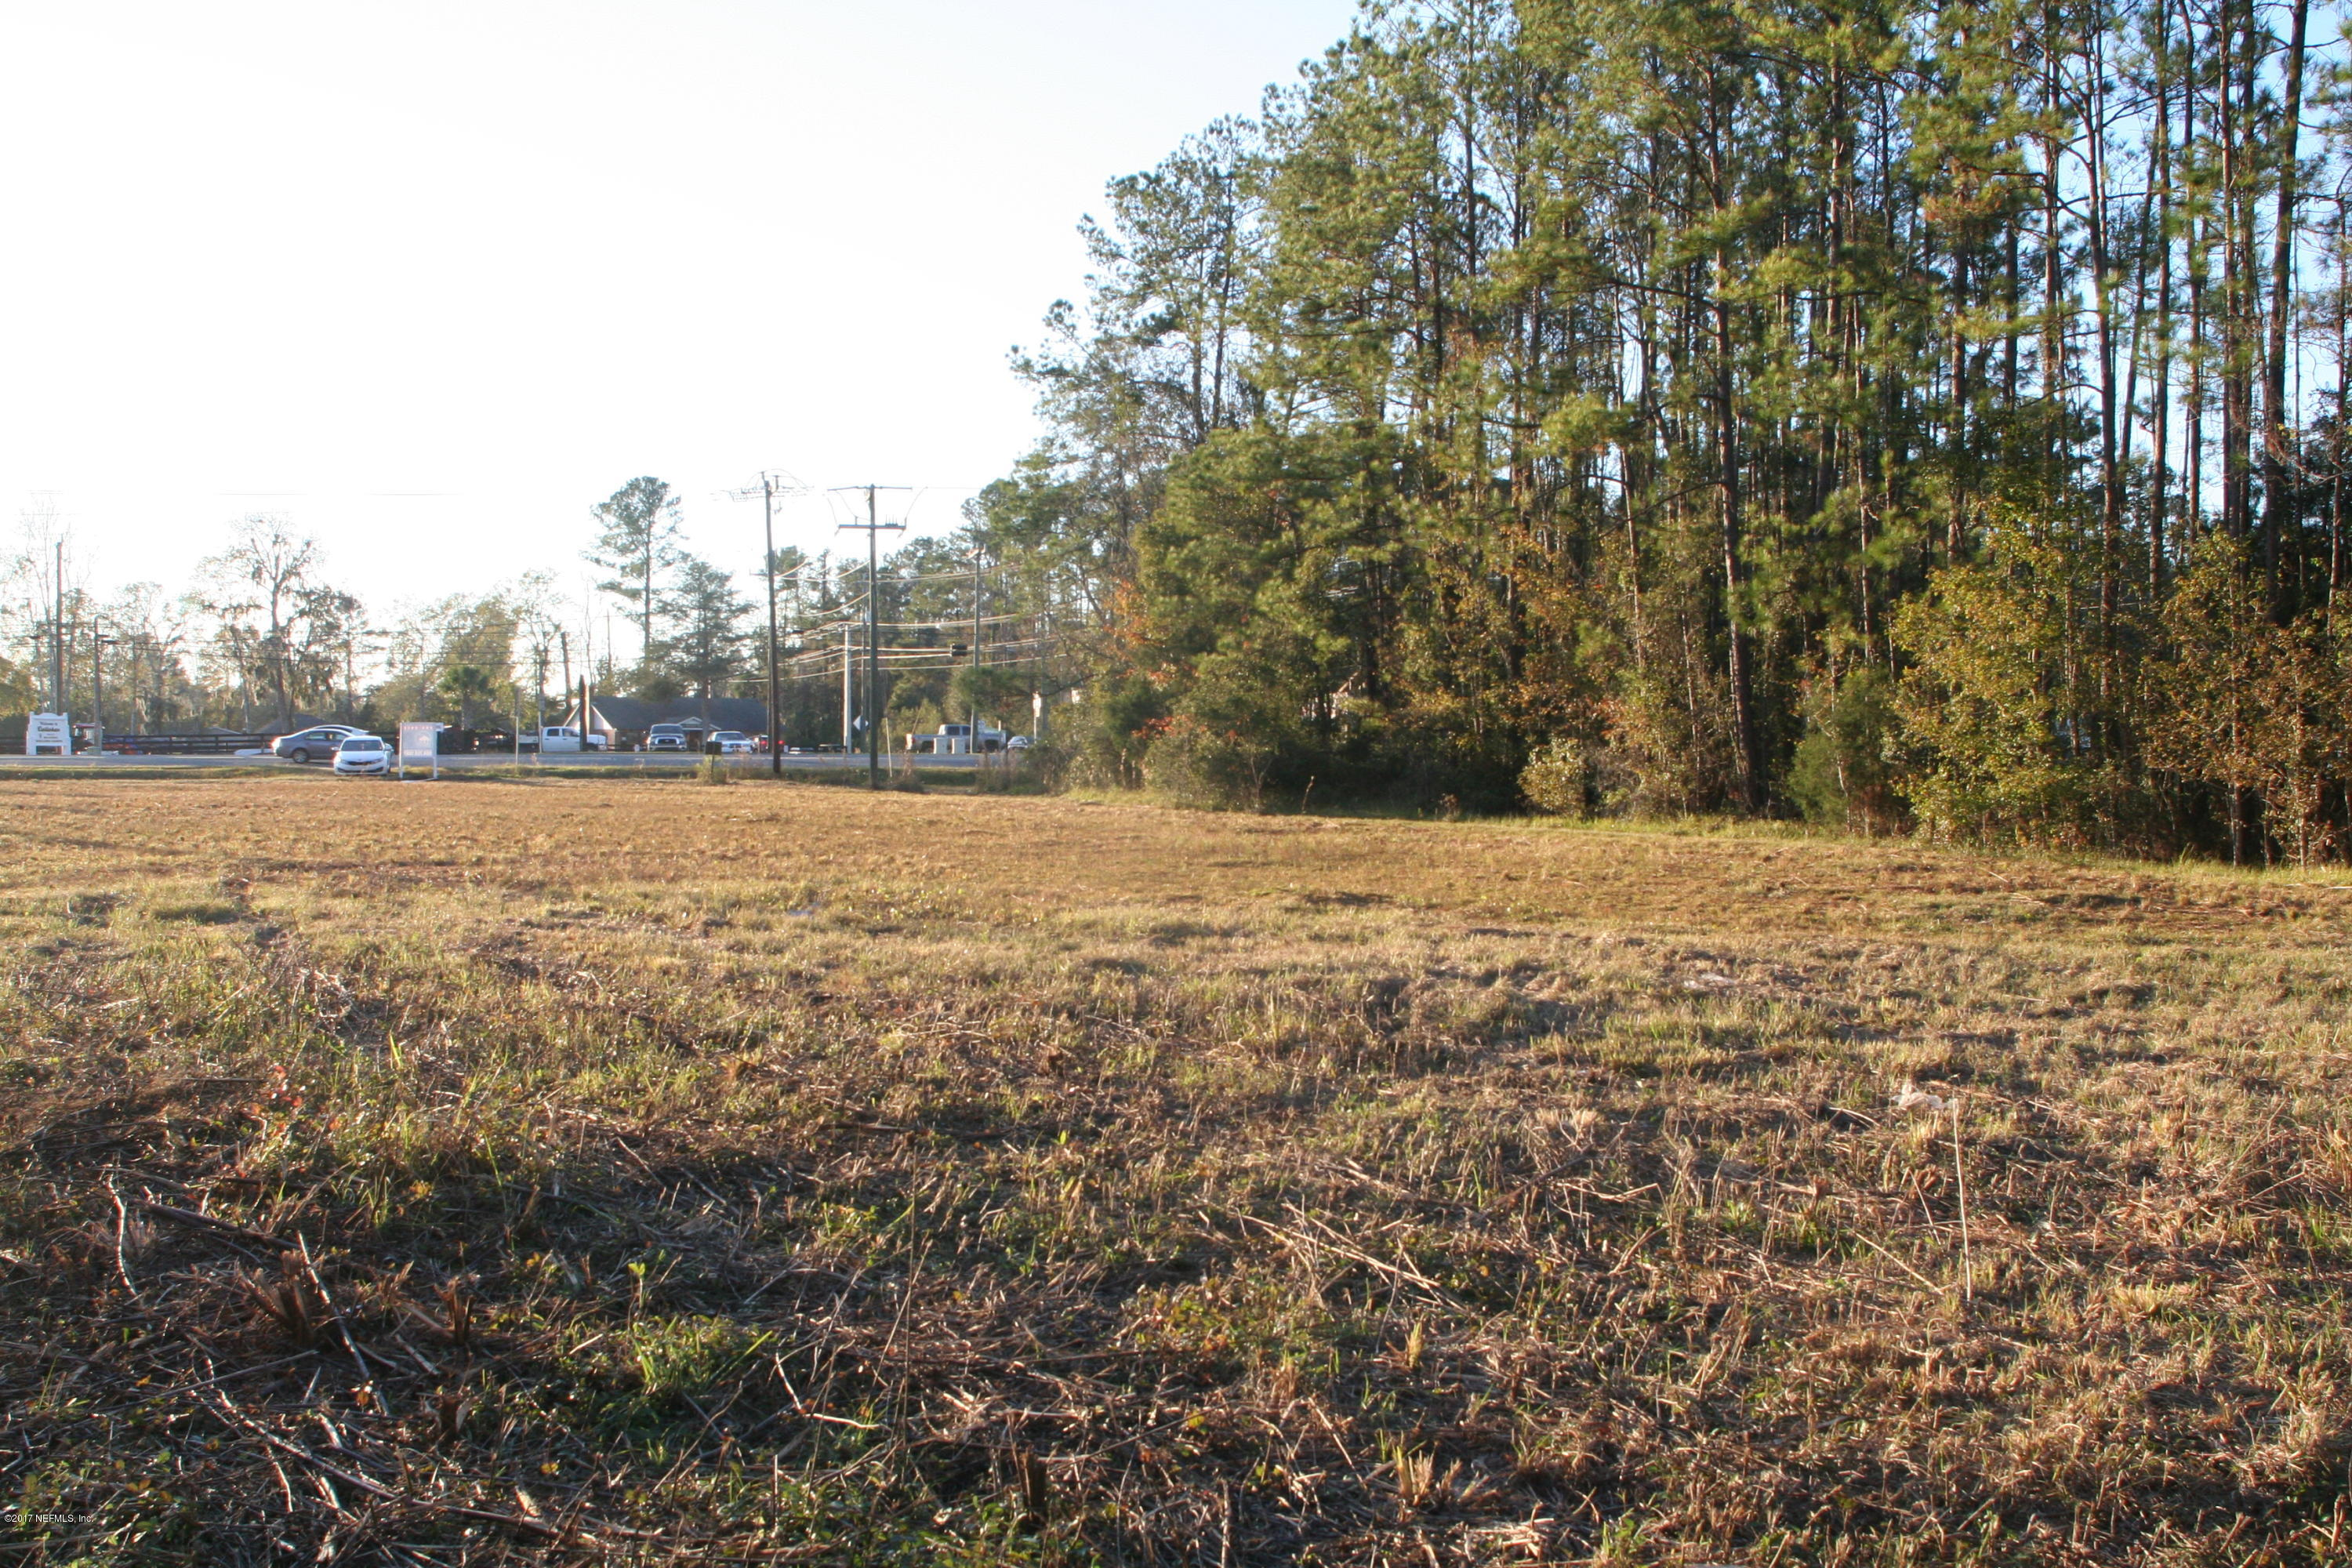 542640 US HIGHWAY 1, CALLAHAN, FLORIDA 32011, ,Vacant land,For sale,US HIGHWAY 1,912822